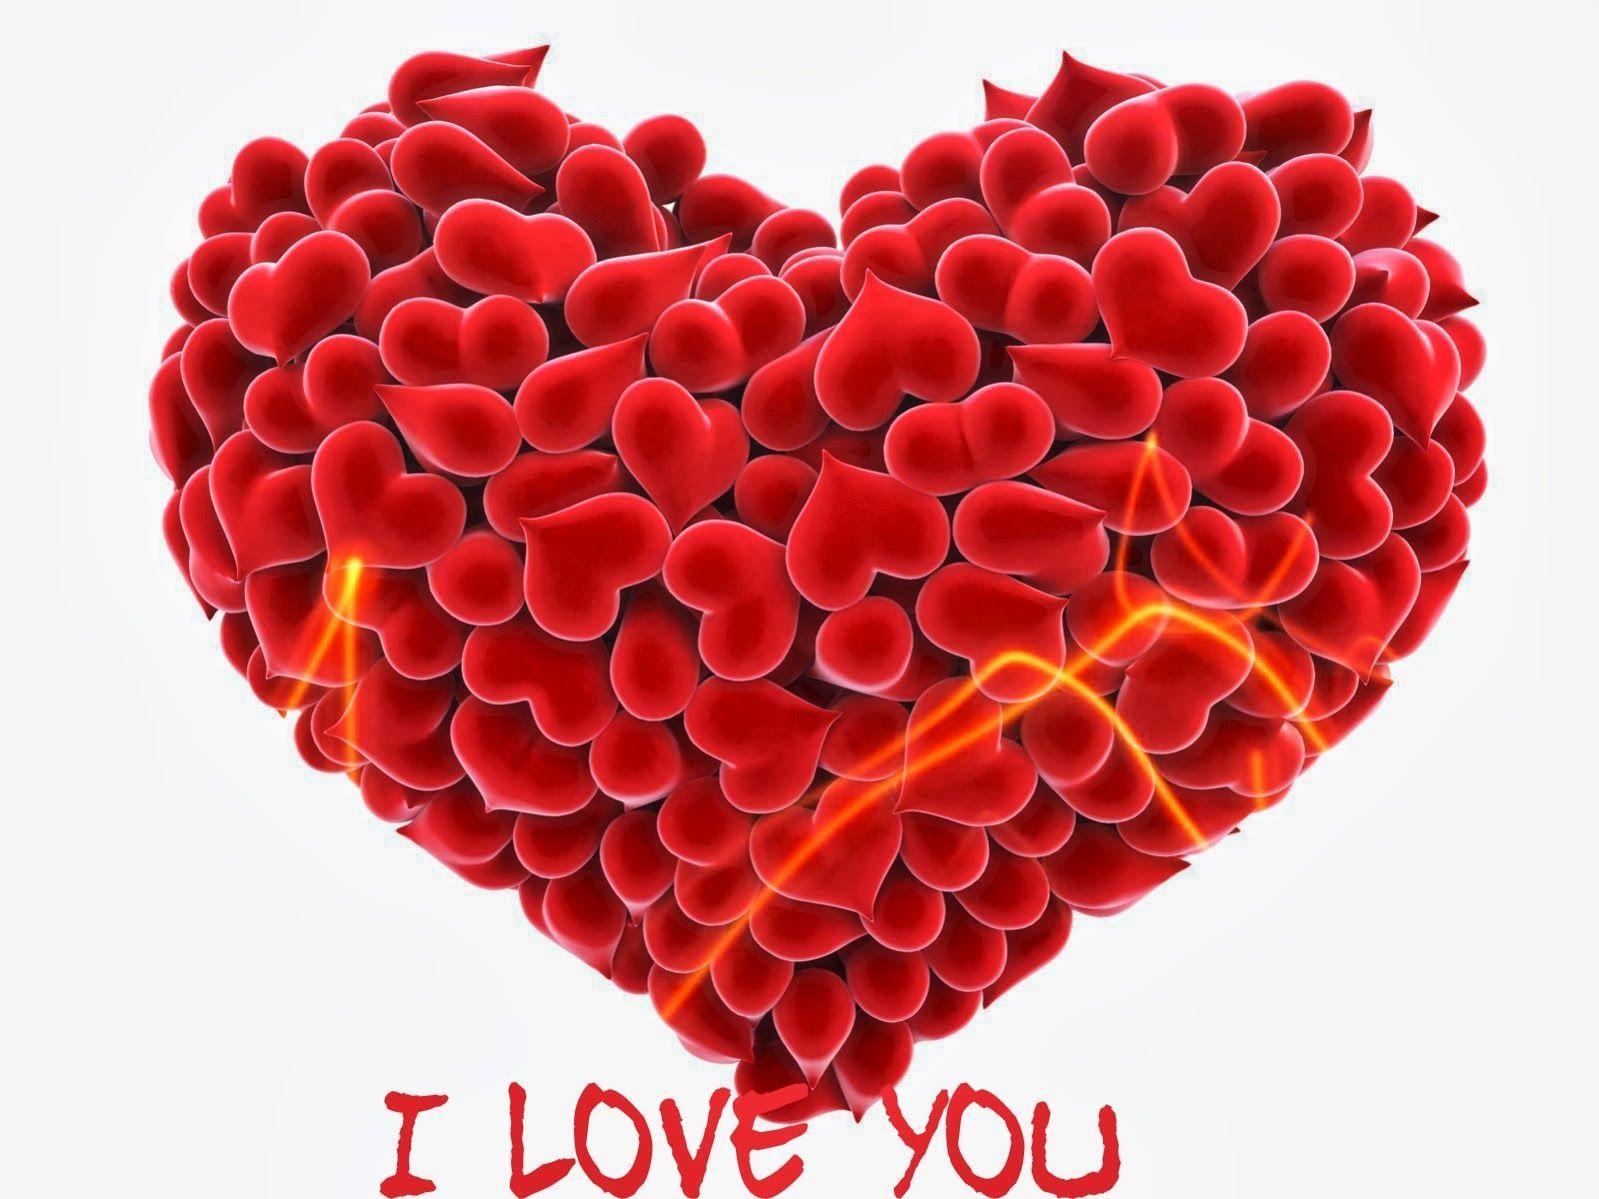 Free Wallpaper I Love You Baby : I Love You Wallpapers With Quotes - Wallpaper cave